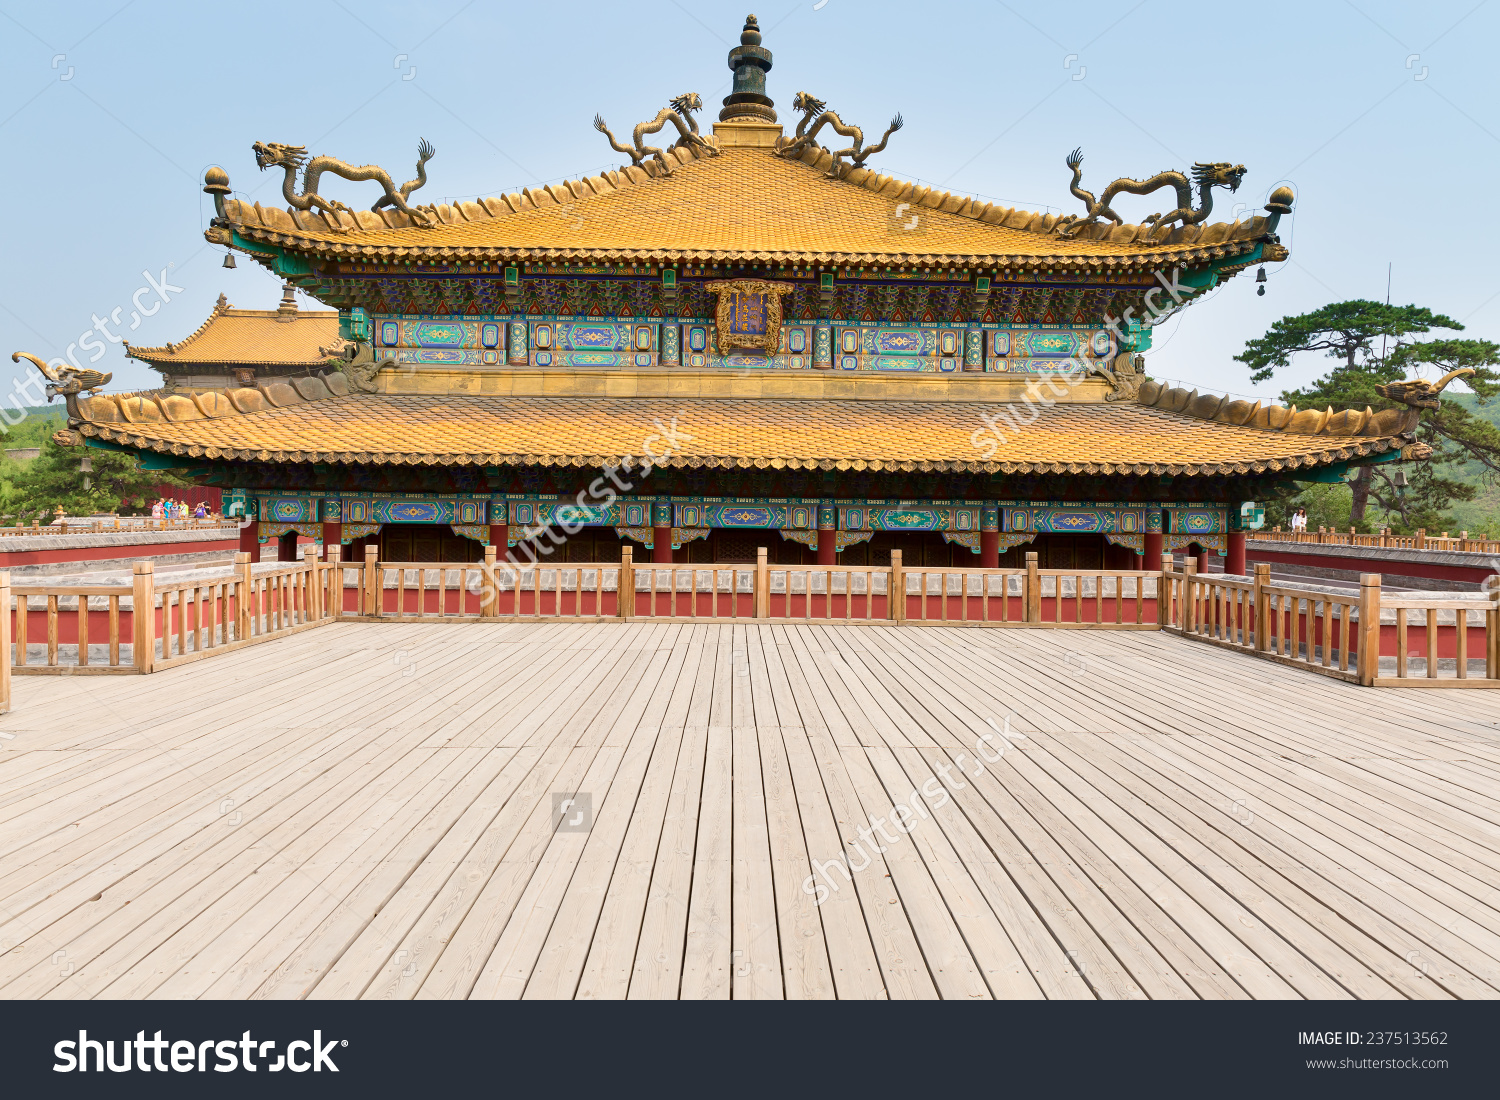 Chinese Ancient Palace Building Classic Ming Stock Photo 237513562.